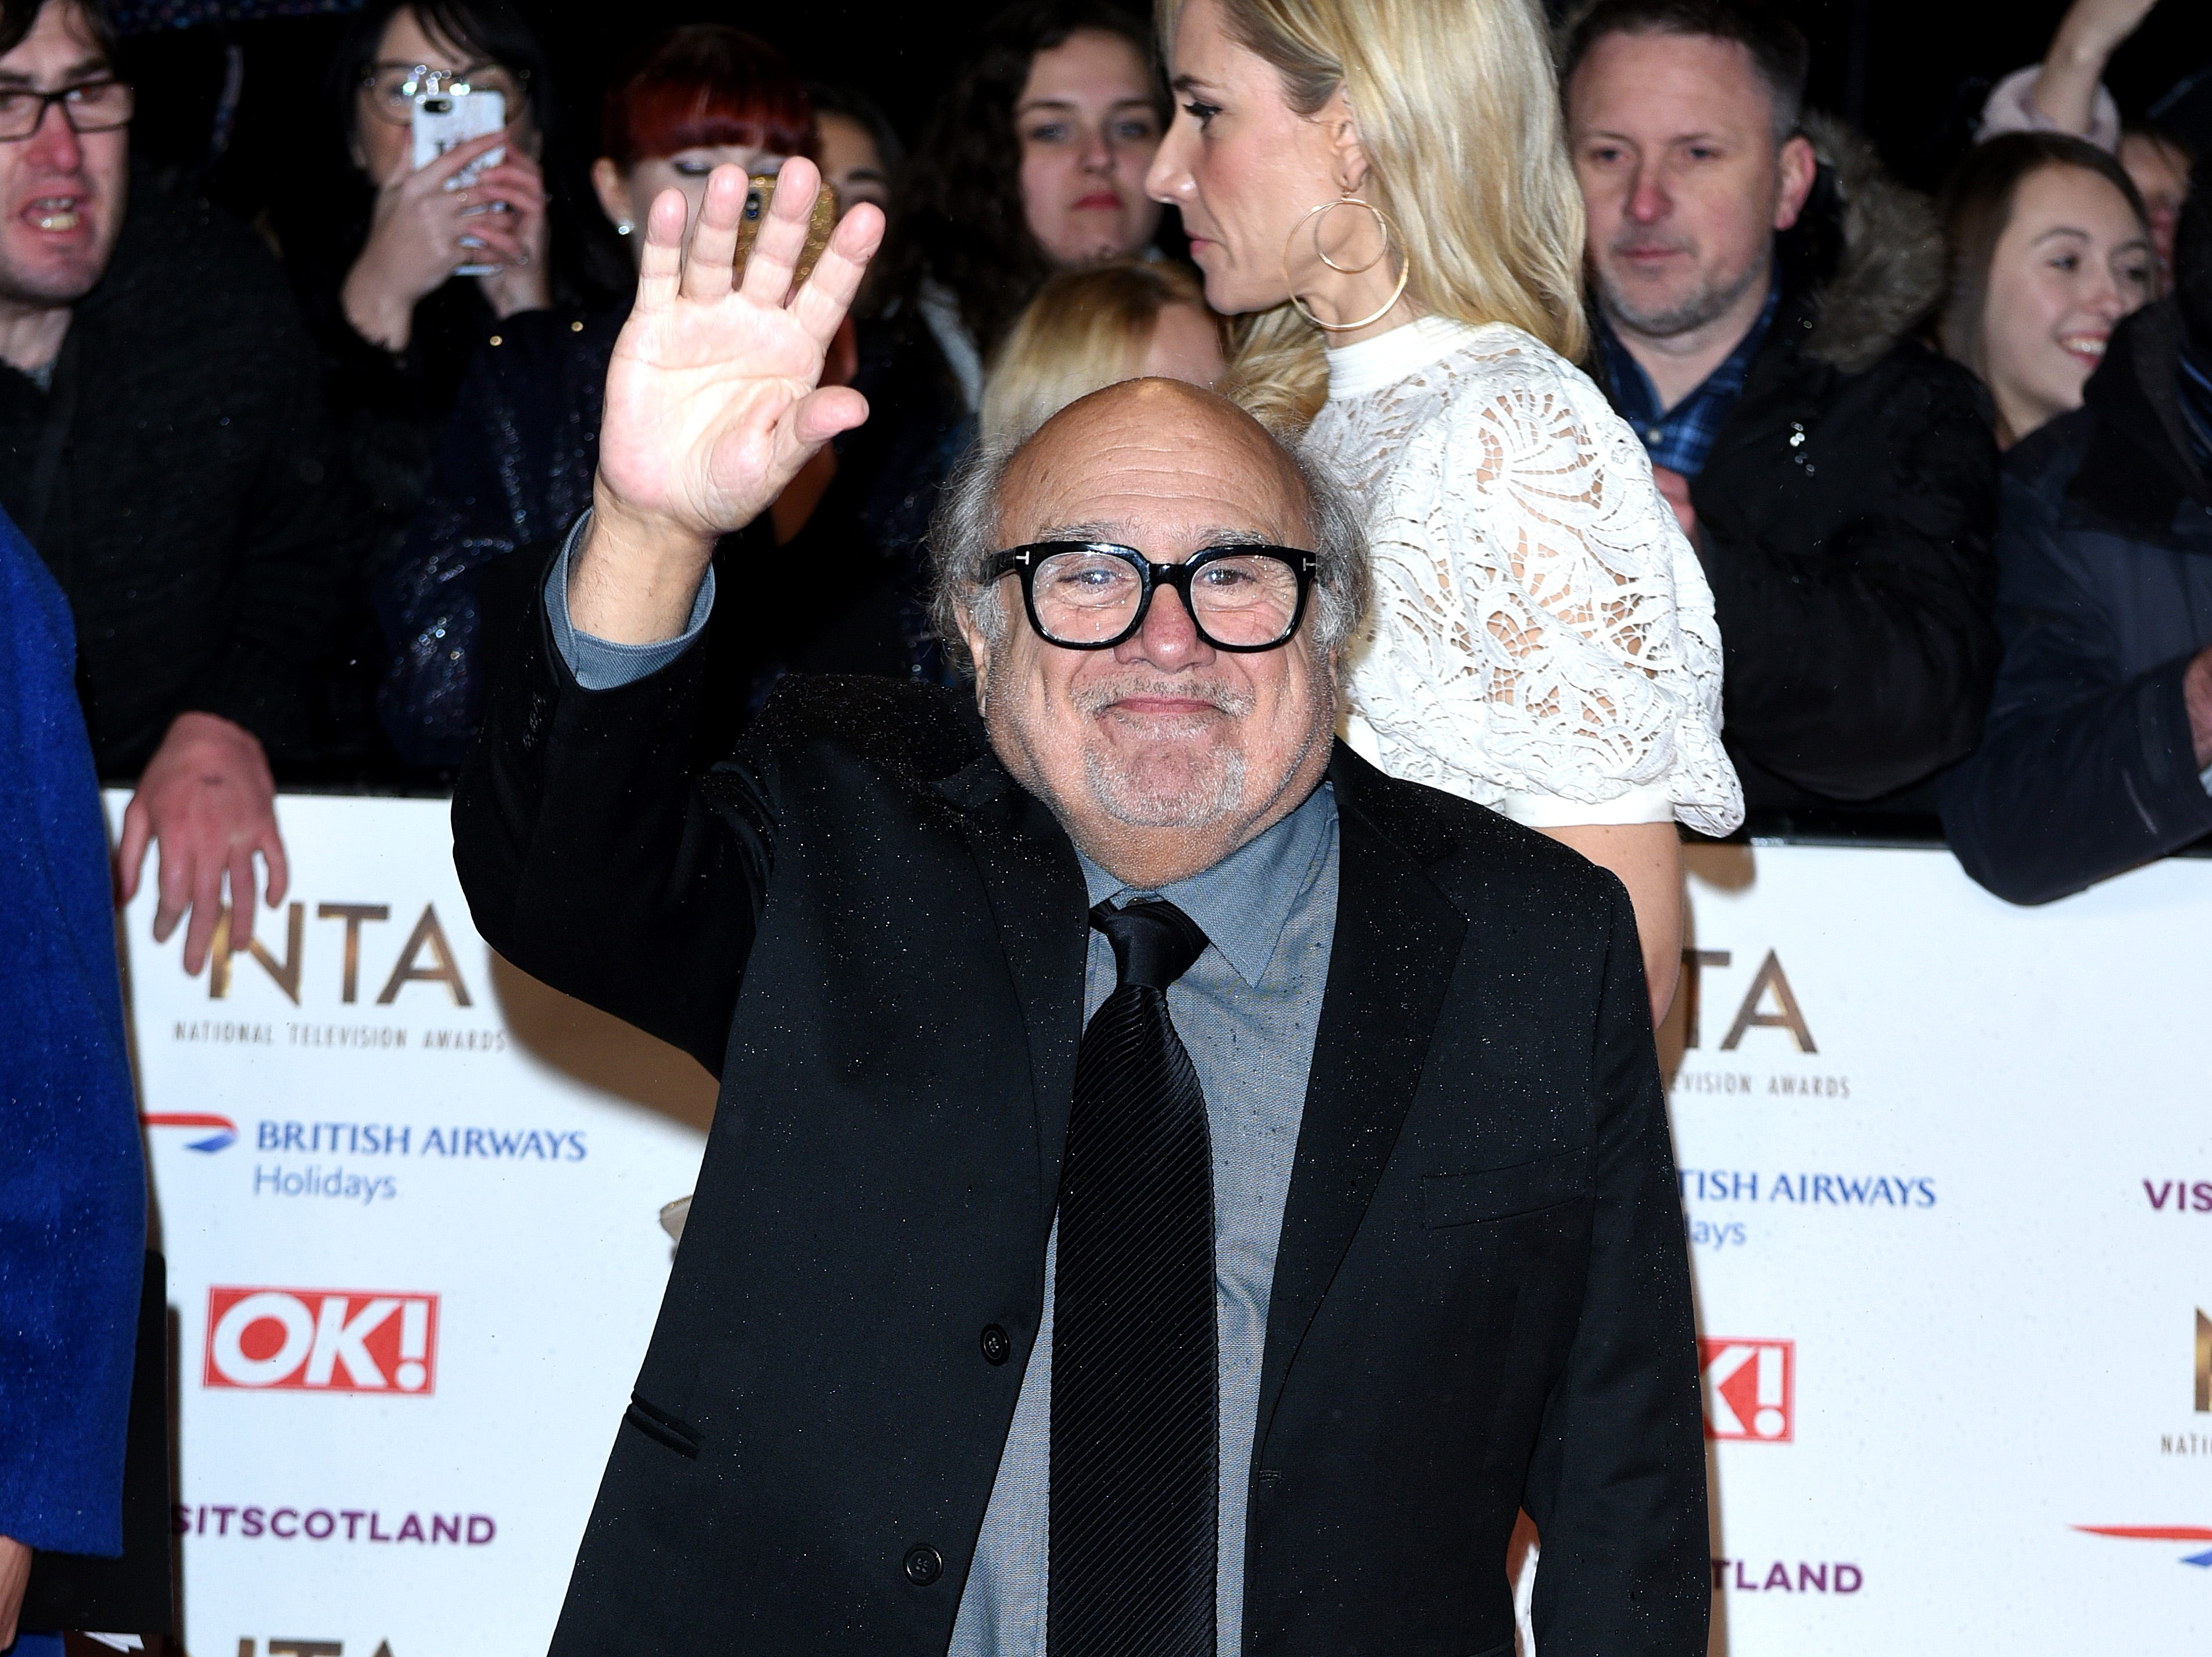 LONDON, ENGLAND - JANUARY 22: Danny DeVito attend the National Television Awards held at The O2 Arena on January 22, 2019 in London, England. (Photo by Joe Maher/WireImage) ORG XMIT: 775284931 ORIG FILE ID: 1098008958